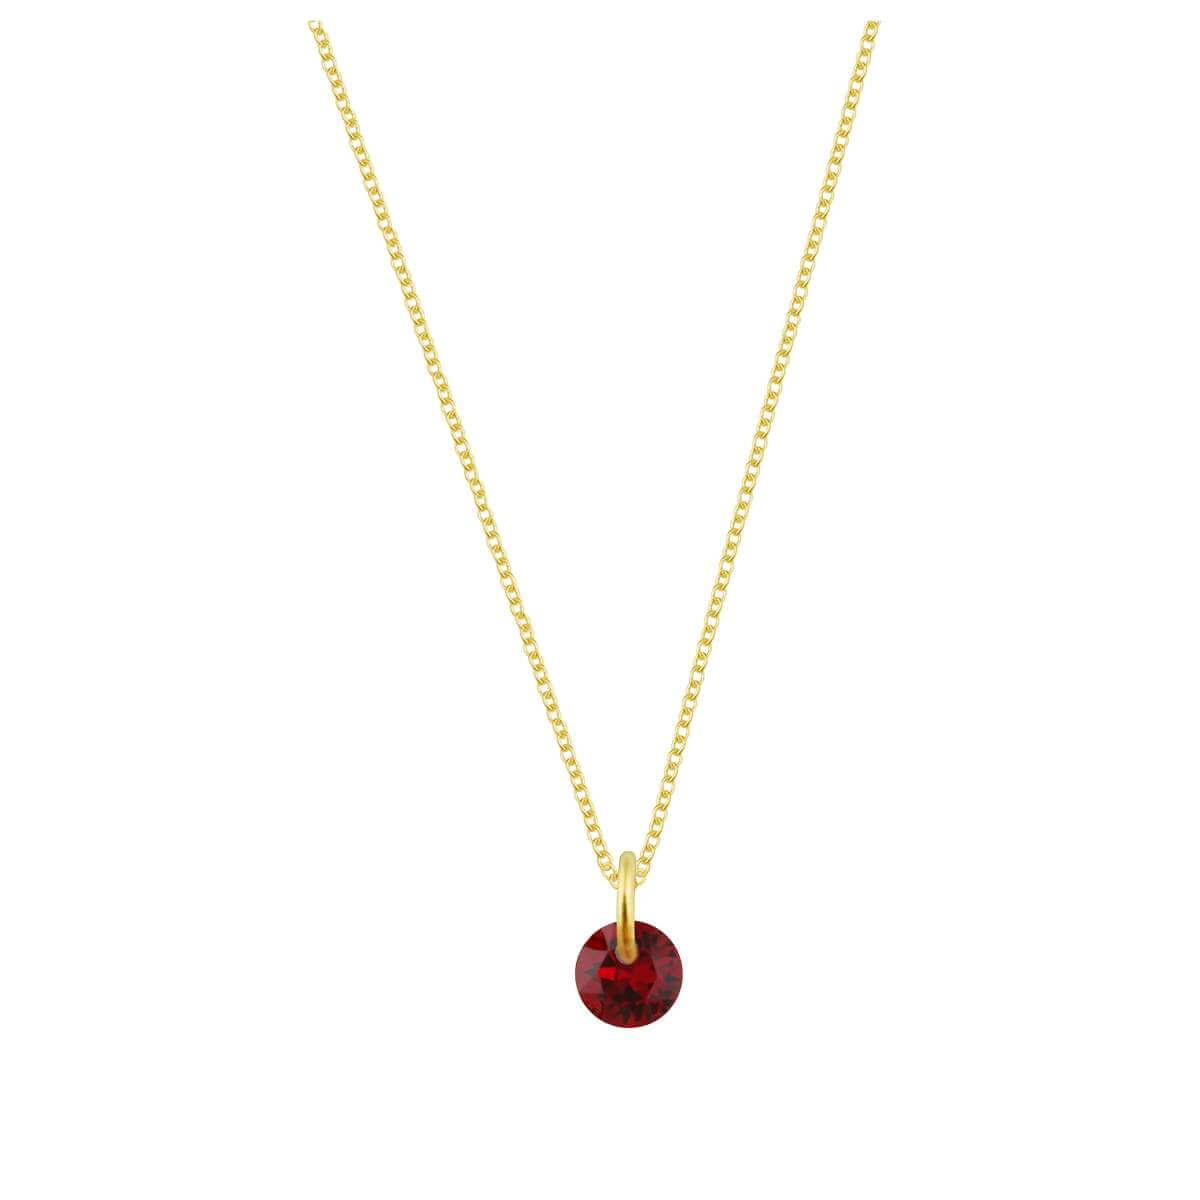 Gold Plated Sterling Silver & 4mm Garnet CZ Necklace - 16 - 22 Inches